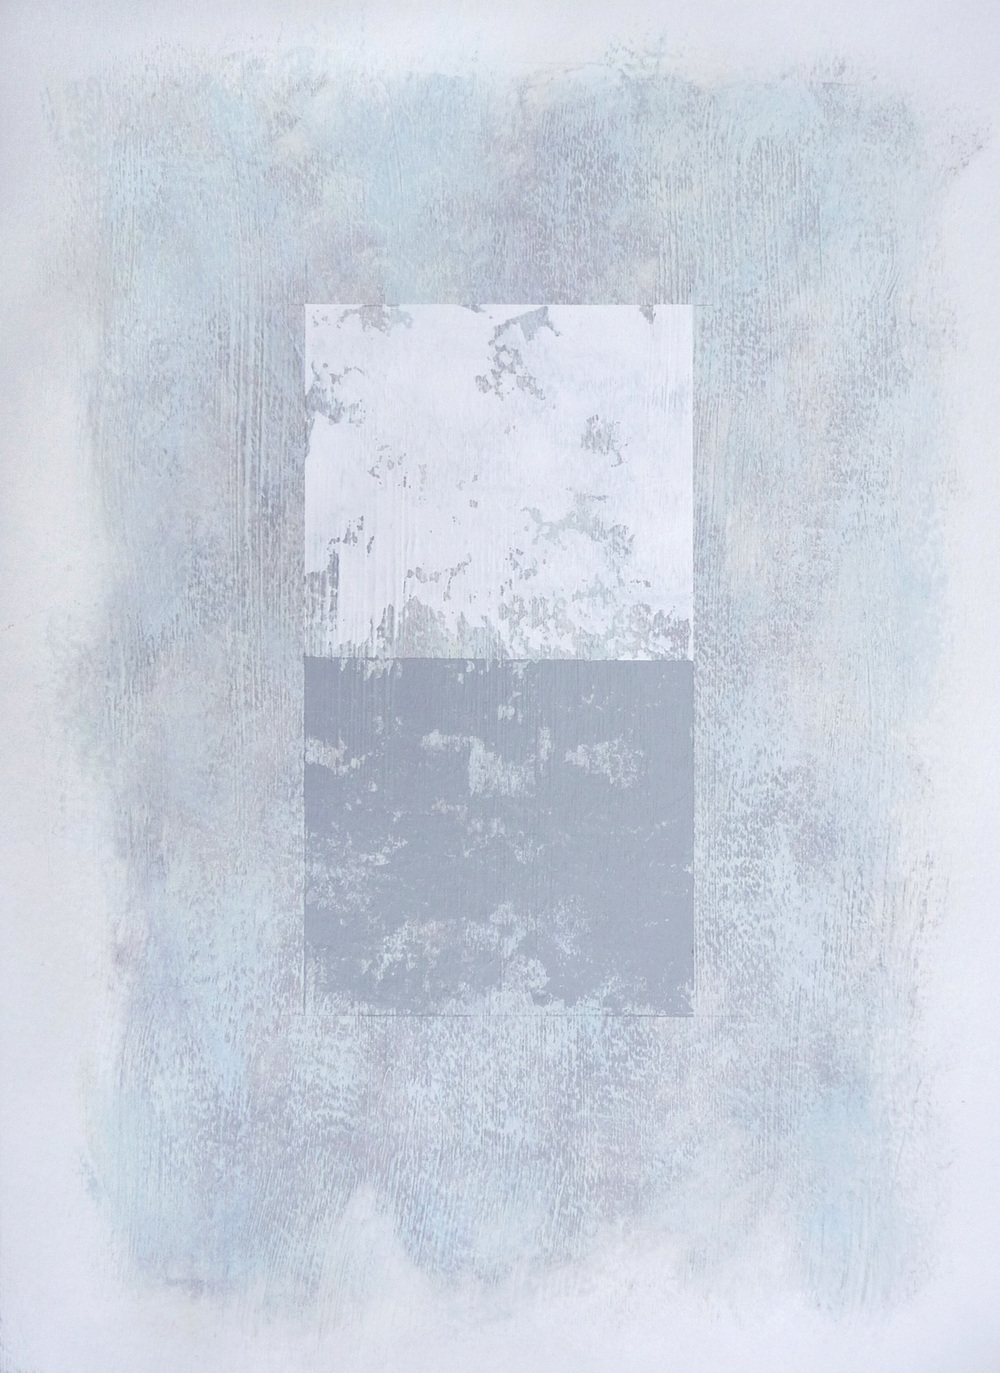 Svinøya in White II  , 2016. Mixed media on paper. 15 x 11 inches (38.1 x 27.9 cm)